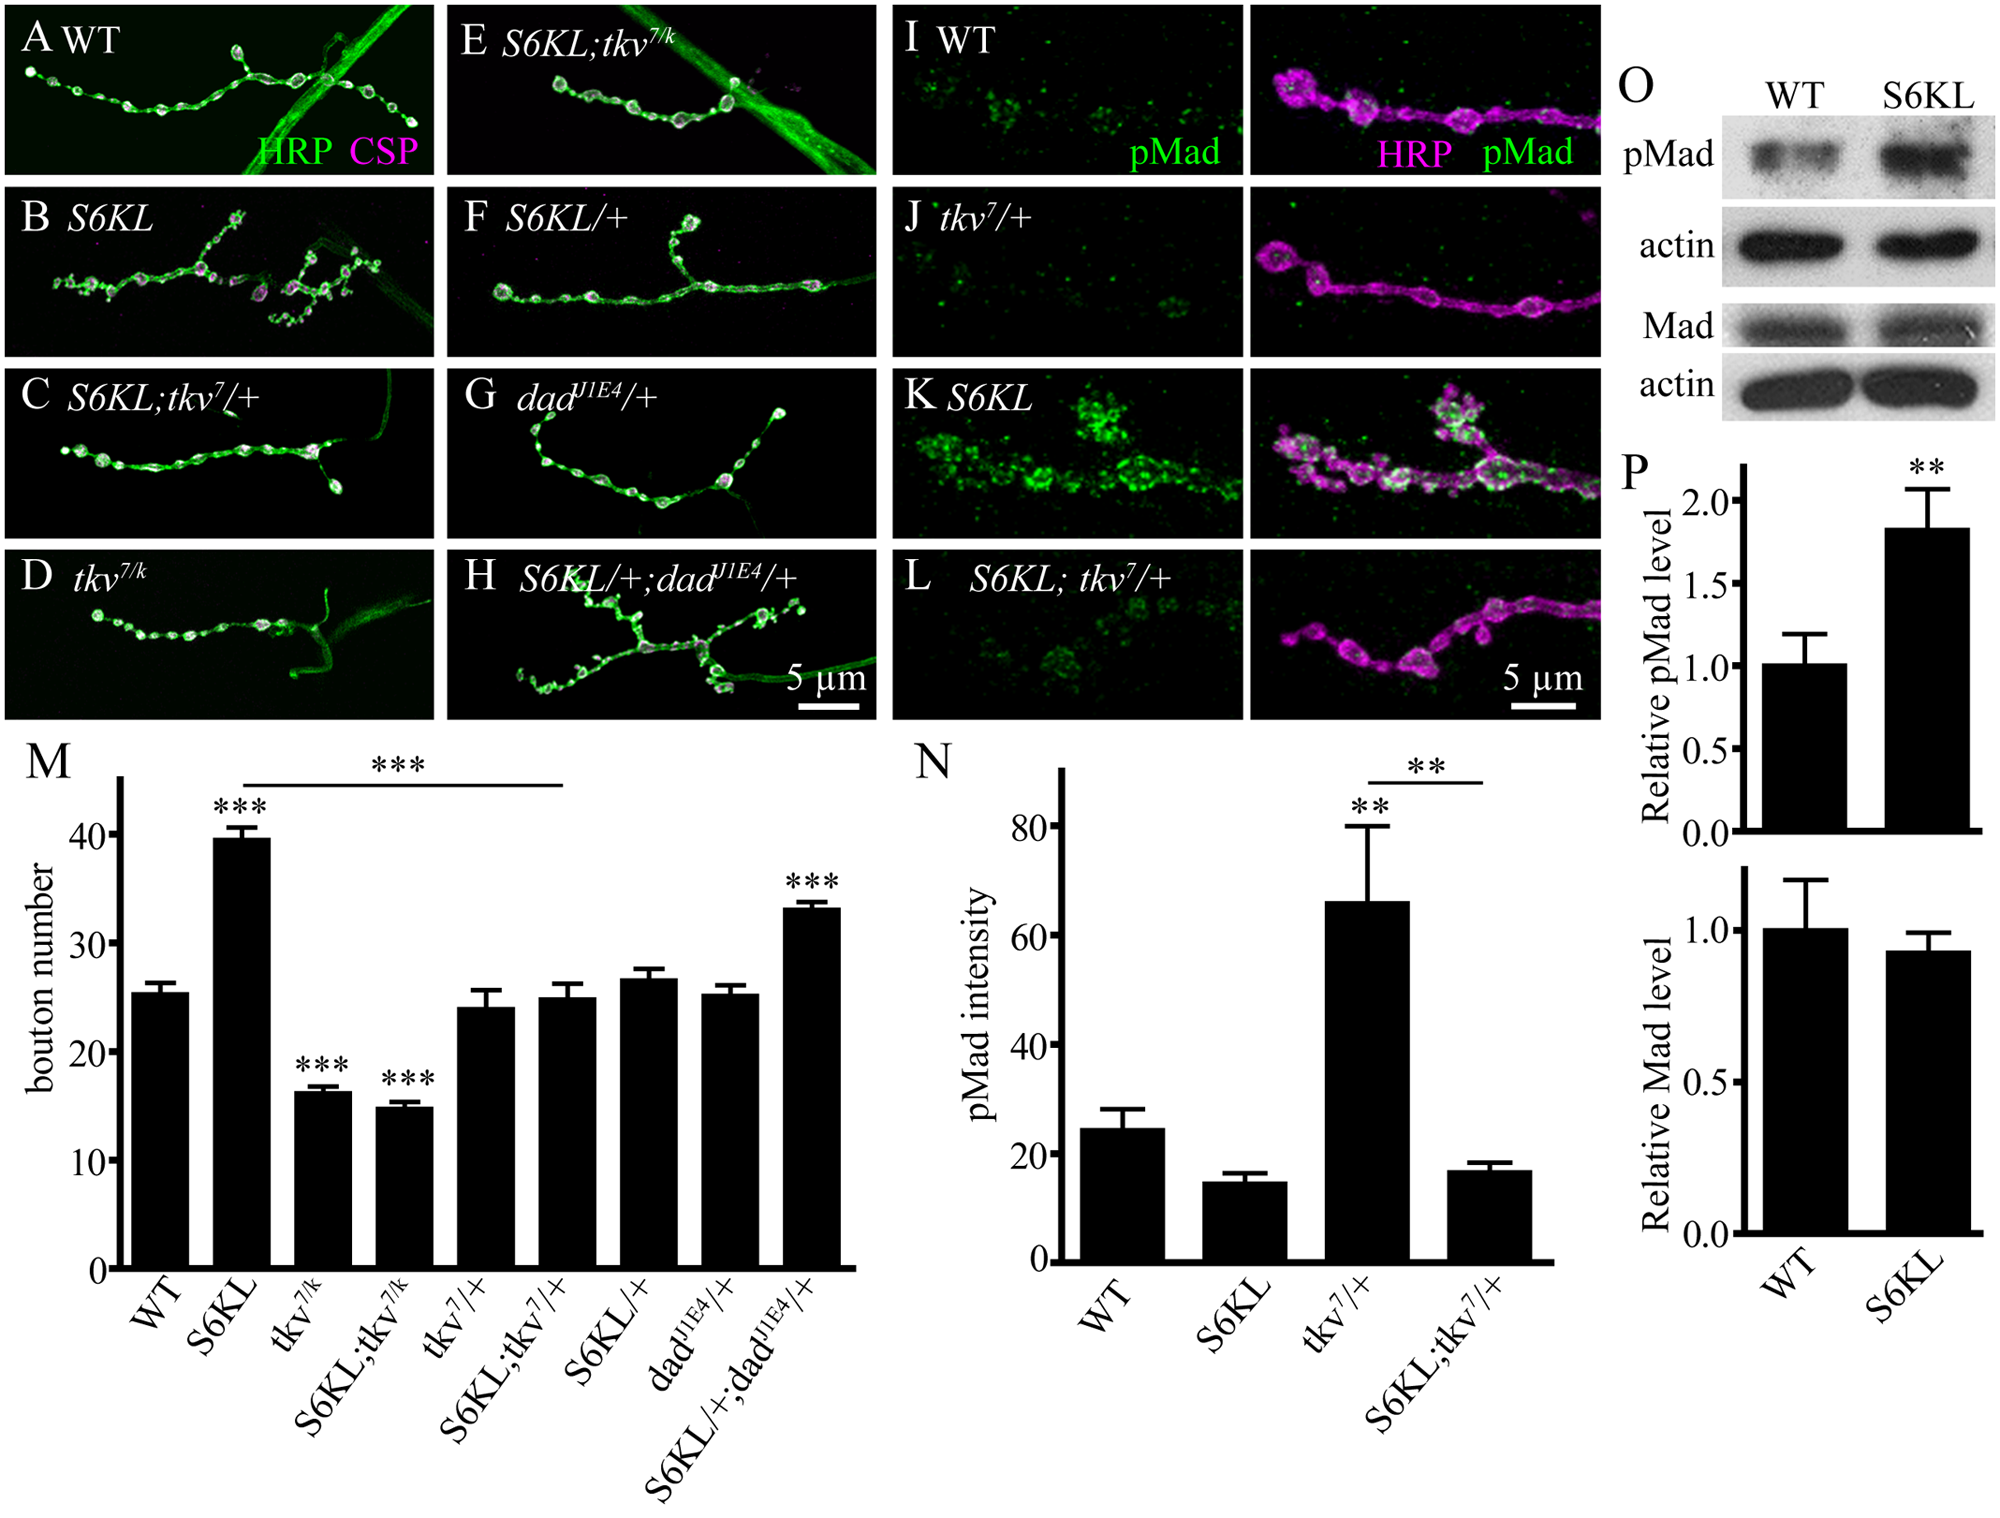 Genetic interactions between <i>S6KL</i> and components of the BMP signaling pathway in regulating NMJ growth.